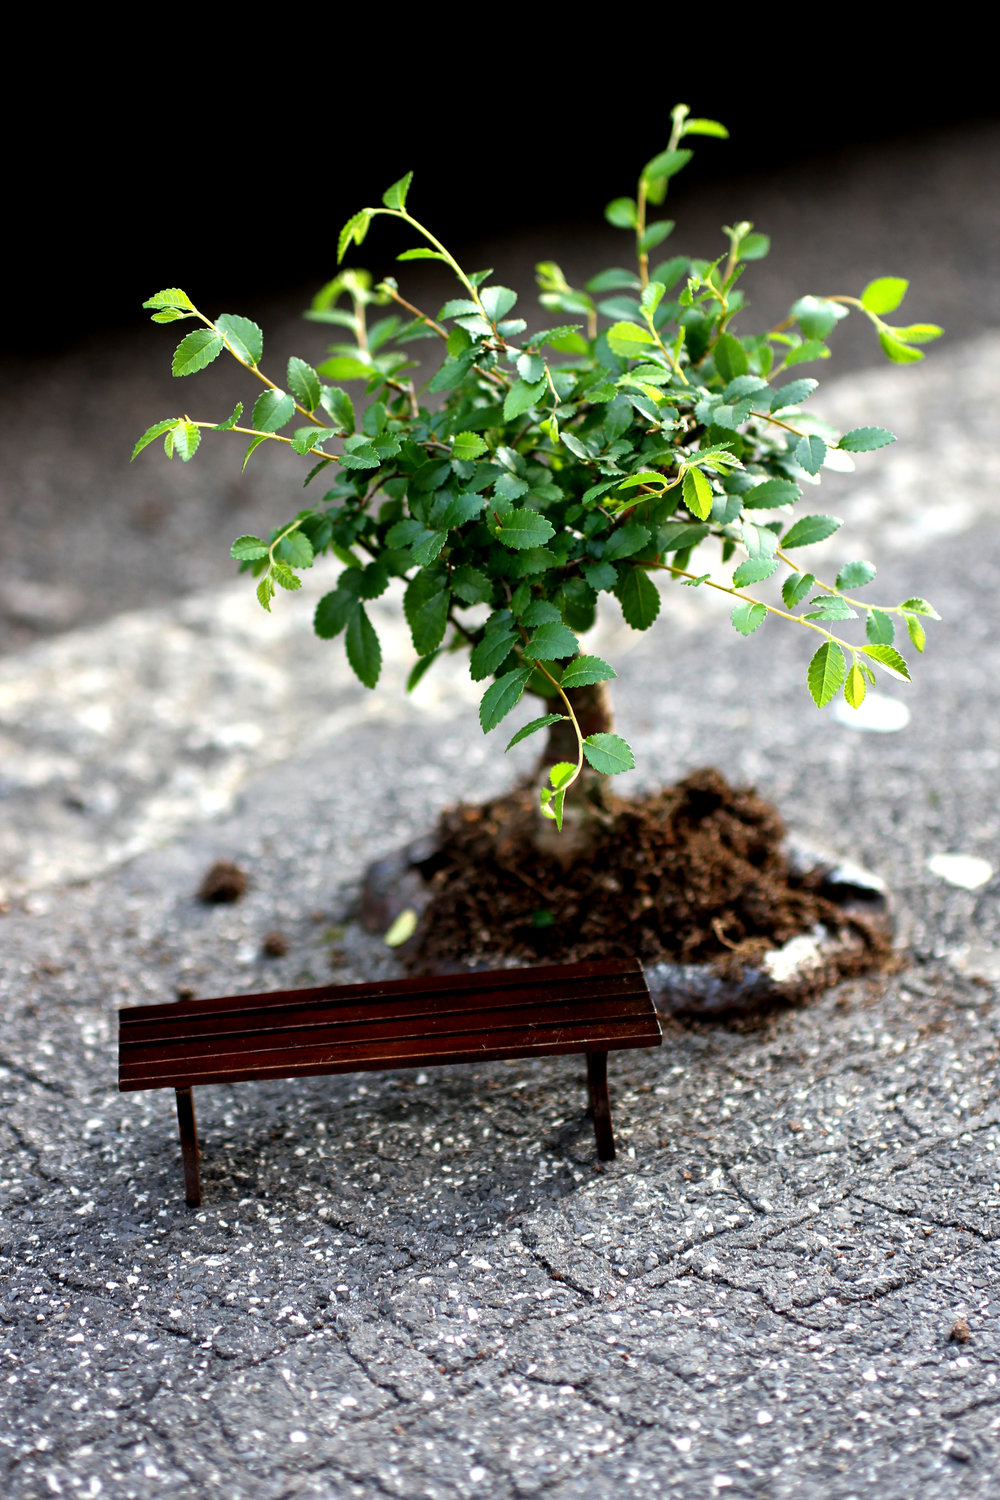 Pothole gardener at Milan Design Week Bonsai dreaming